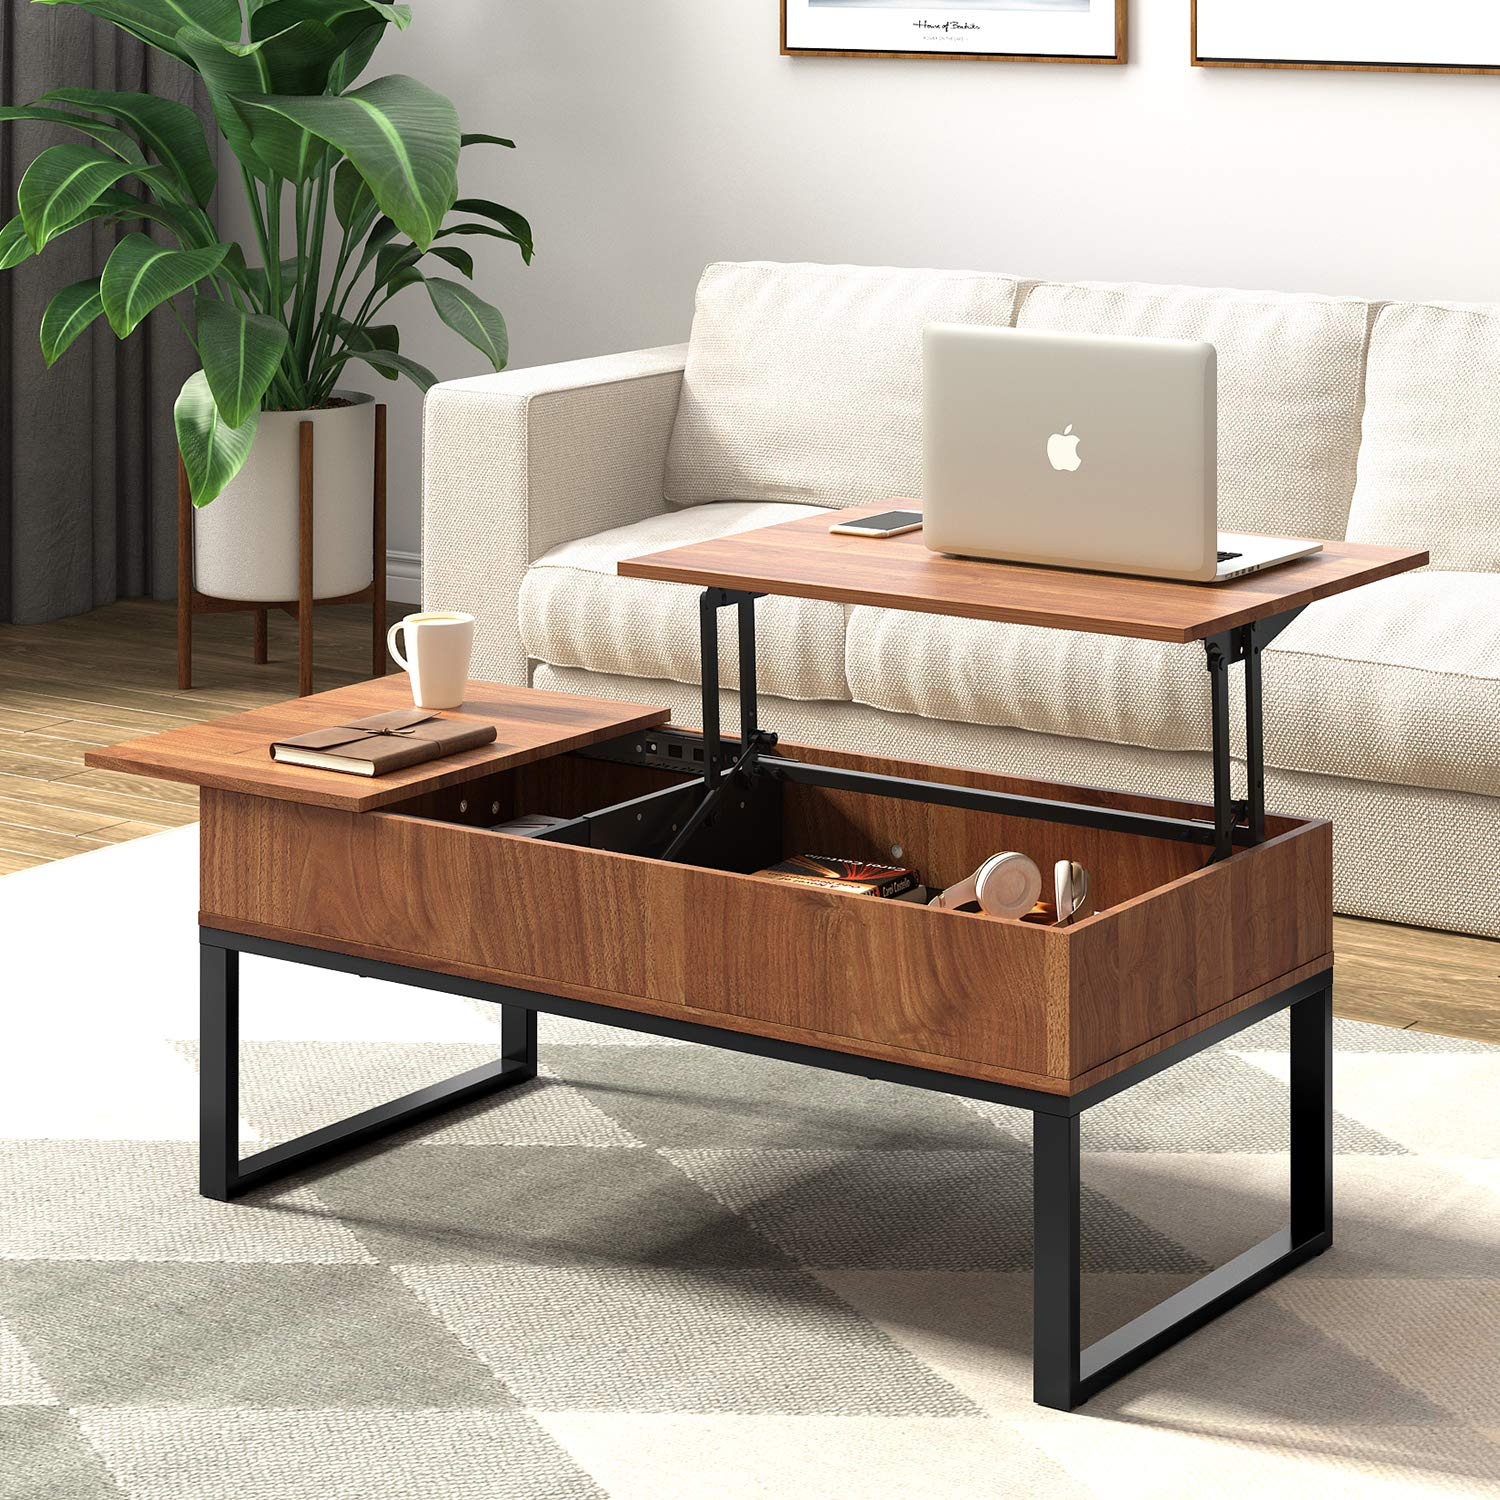 WLIVE Wood Coffee Table with Adjustable Lift Top Table, Metal Frame Hidden Storage Compartment for Home Living Room by WLIVE